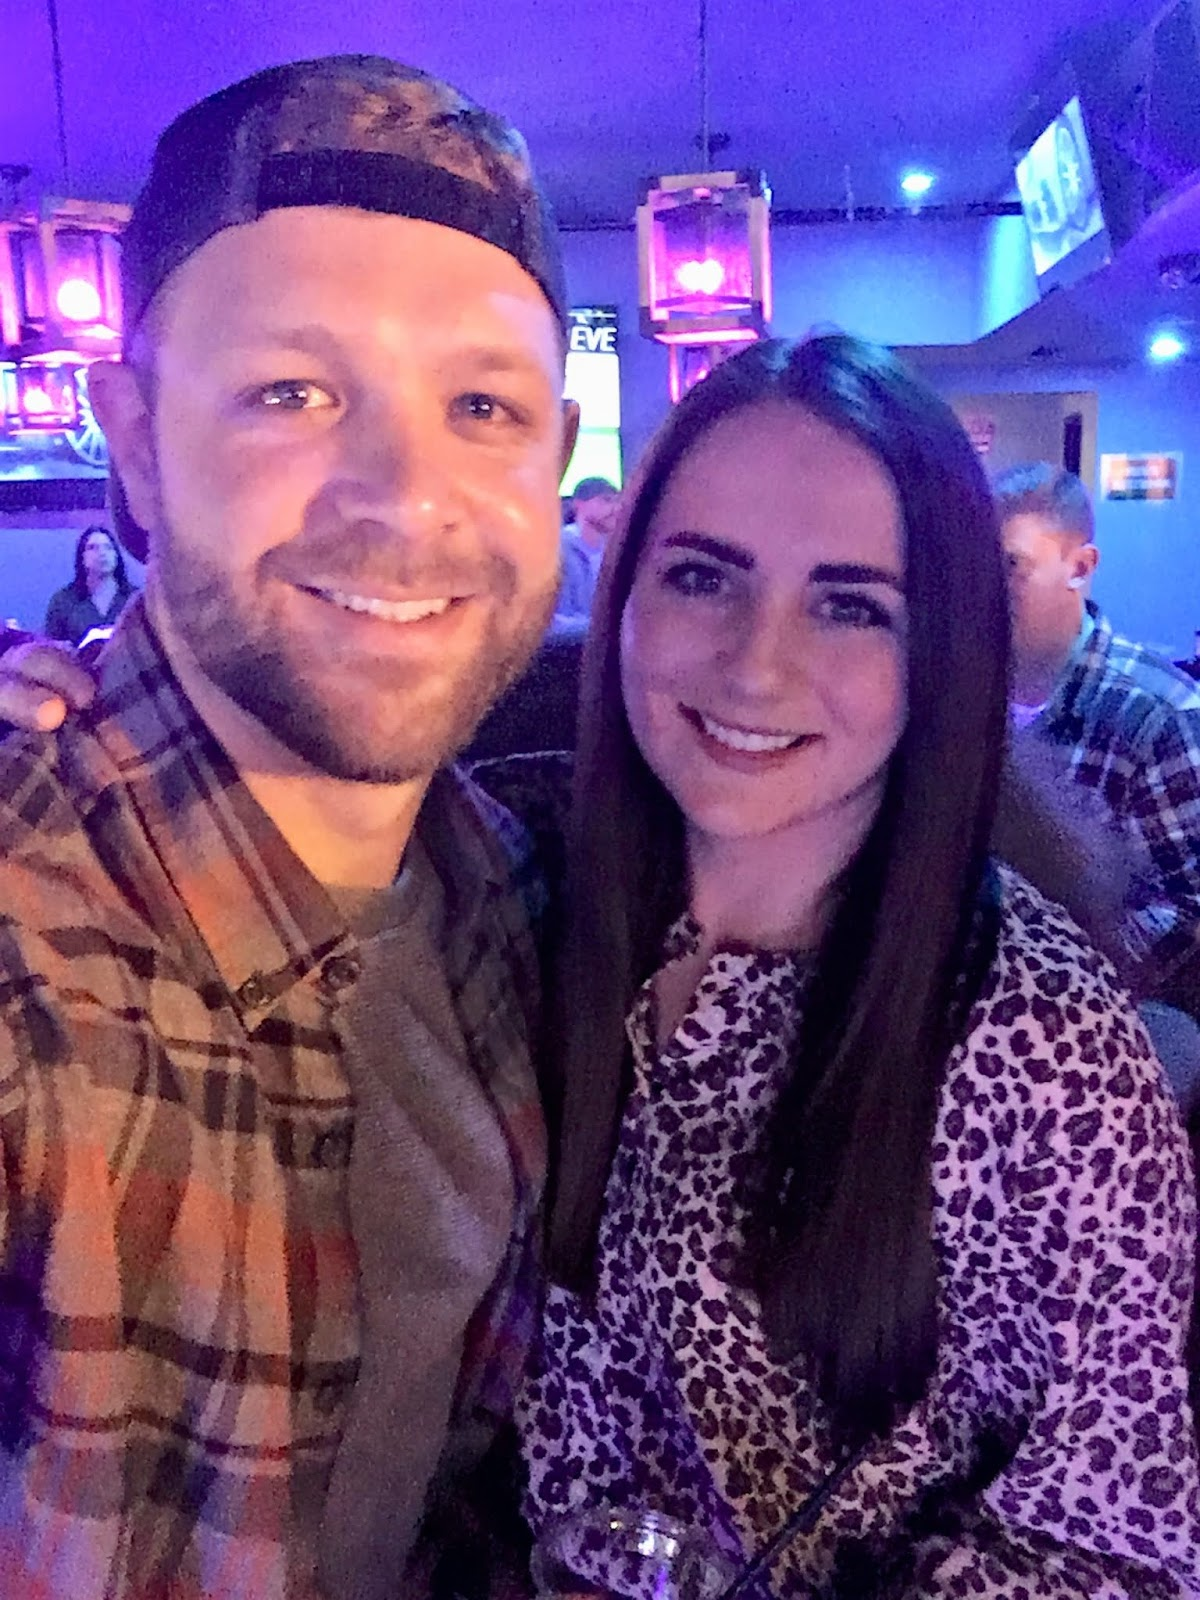 Best bars on Broadway in Nashville | A Memory of Us | Couples trip to Nashville | Itinerary for a Long Weekend in Nashville | Kid Rock's Big Honky Tonk Review | What to do in Nashville